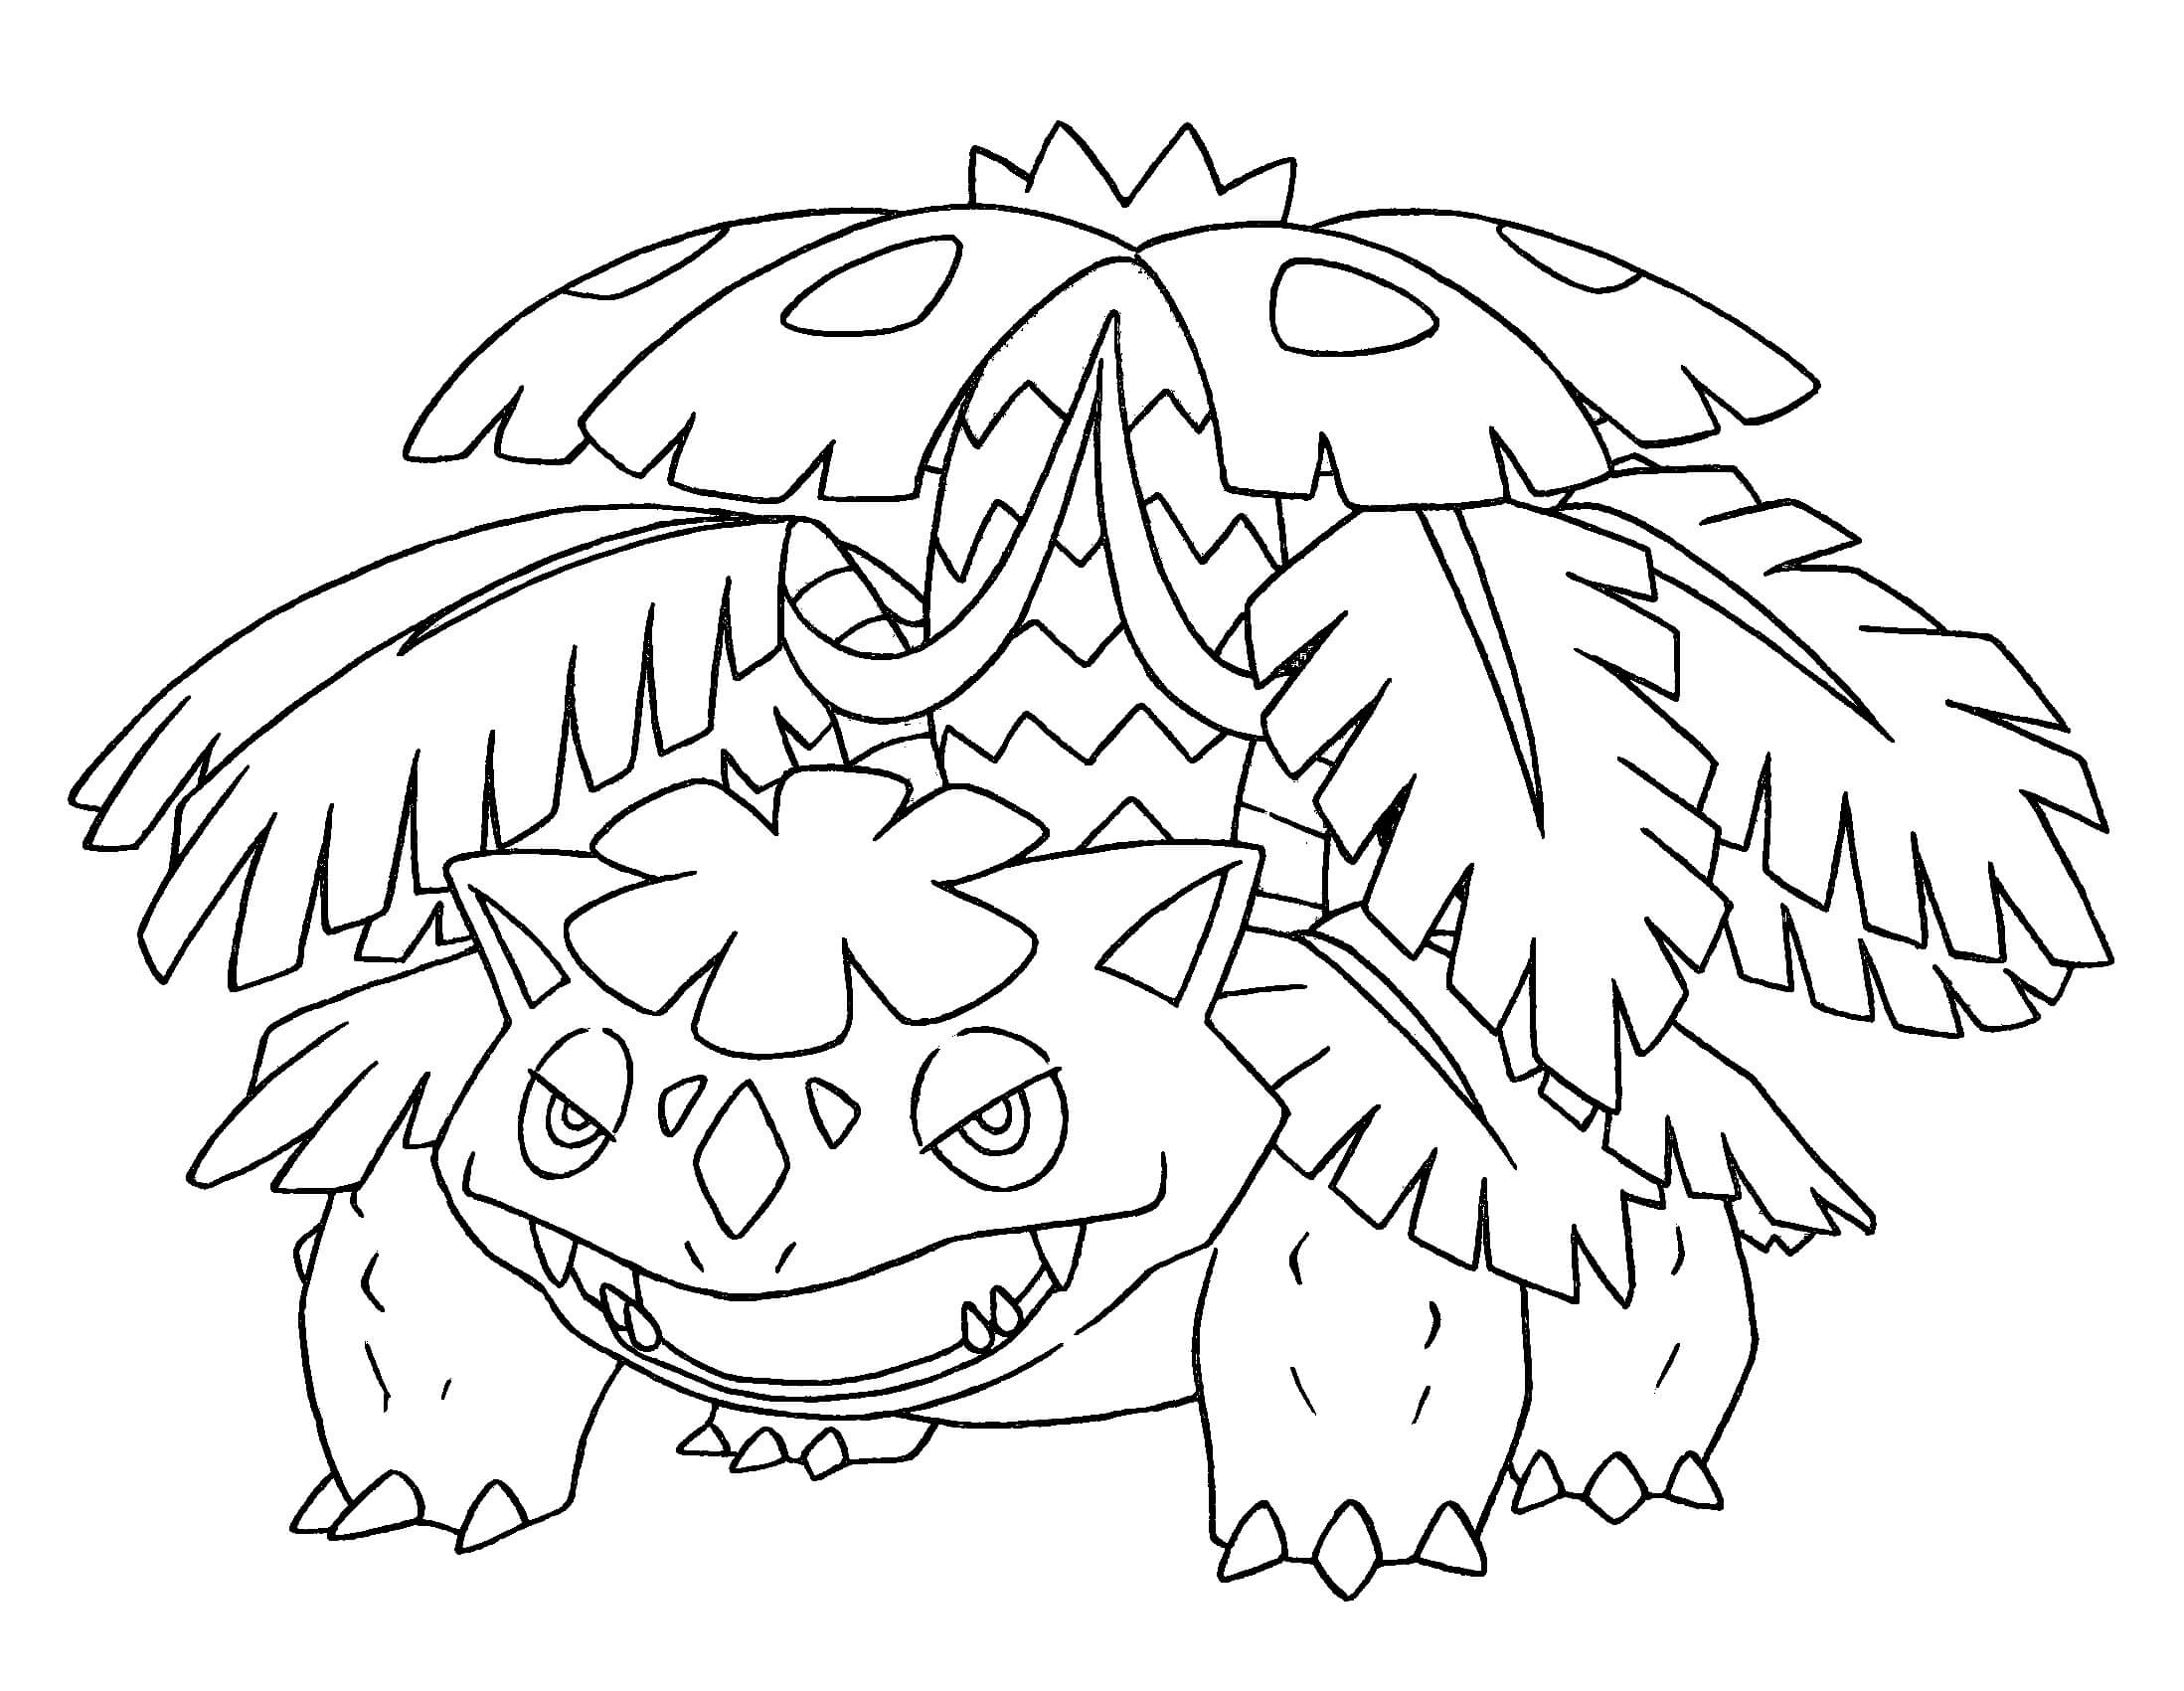 It is a graphic of Accomplished mega pokemon coloring pages